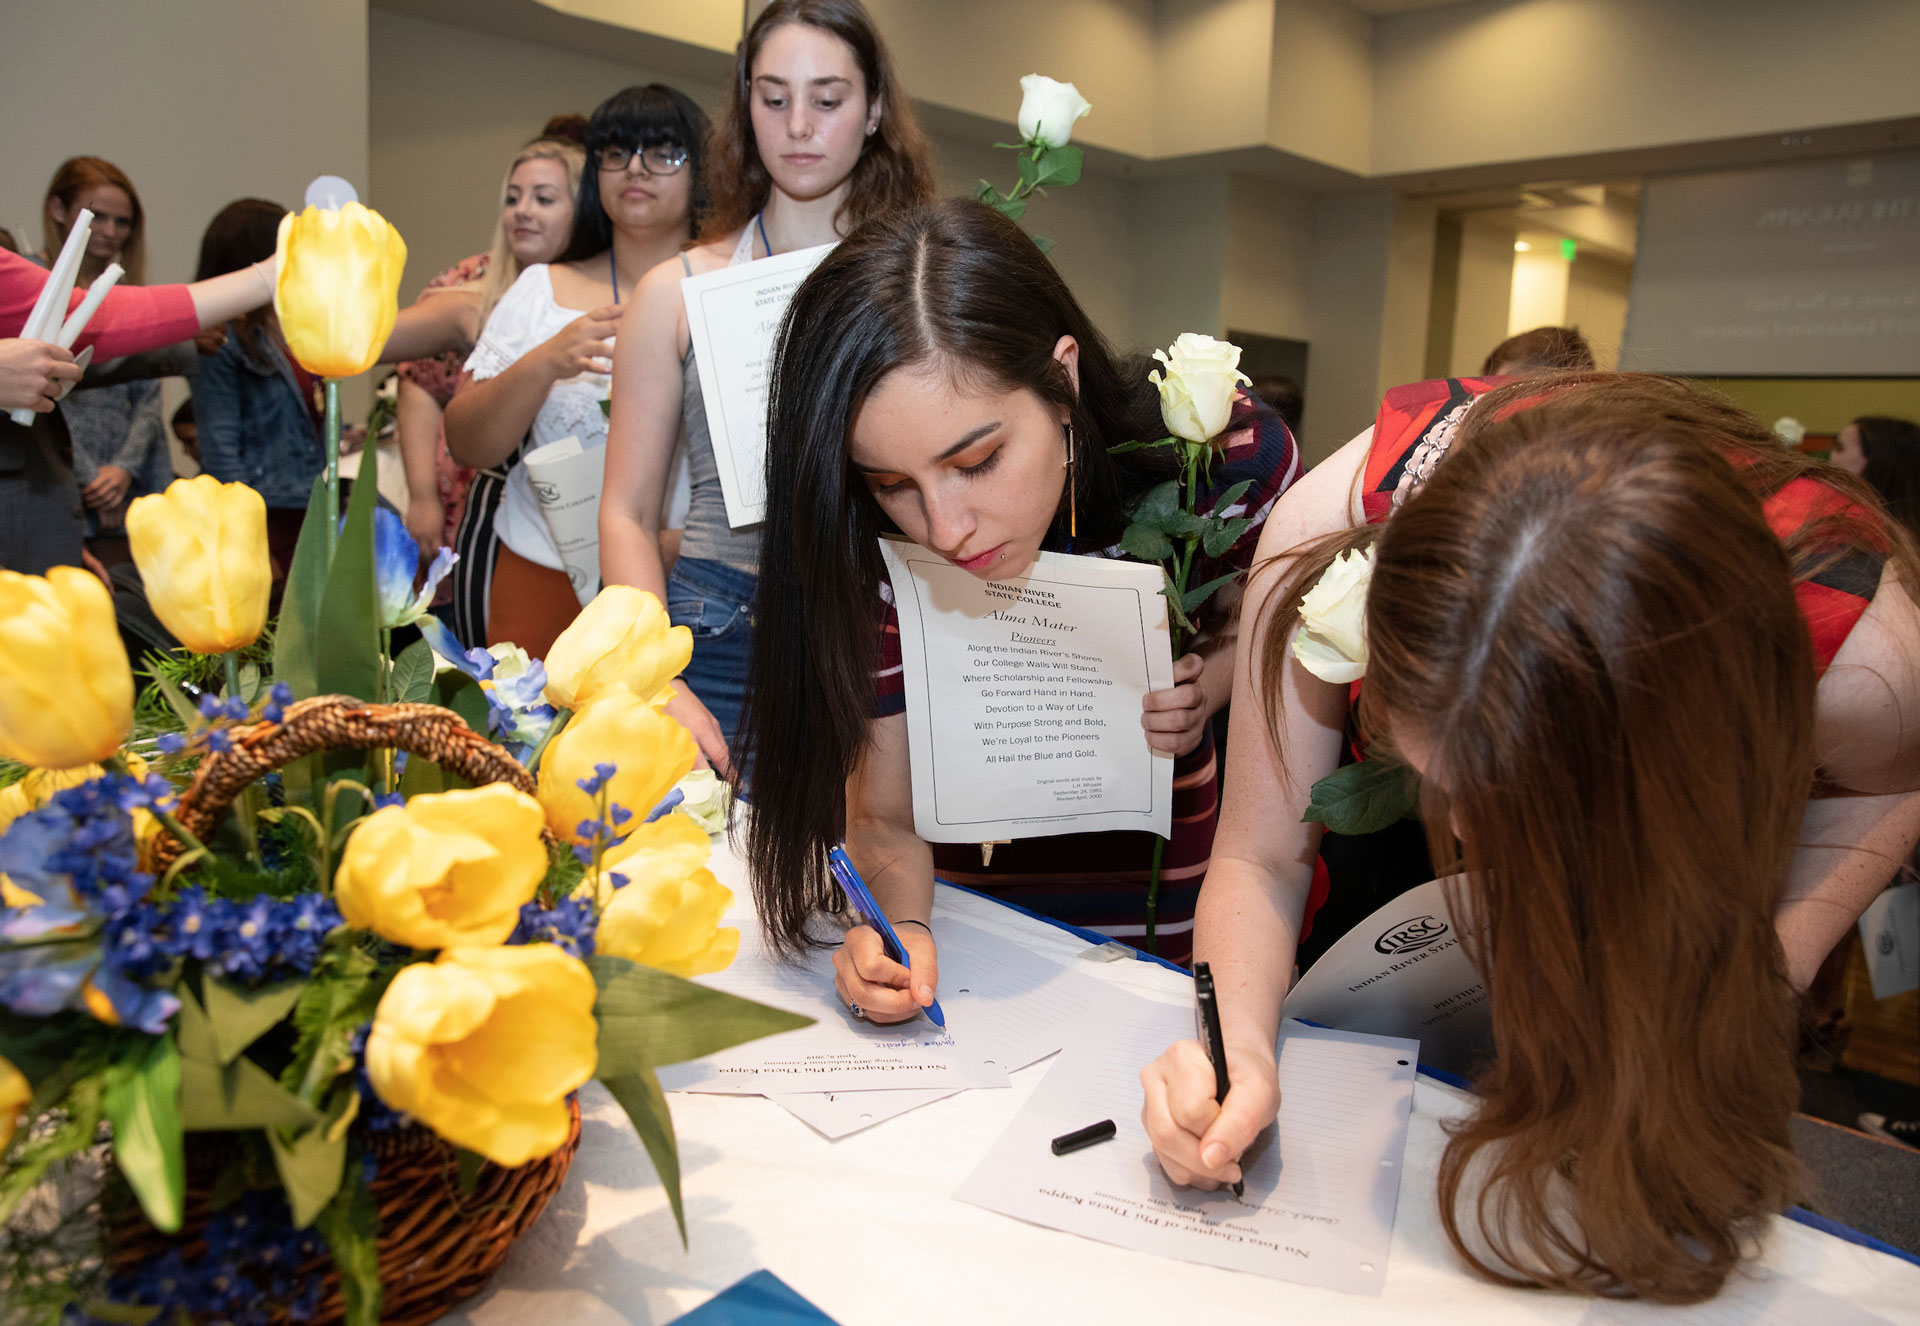 Inductees into the Nu Iota Chapter of Phi Theta Kappa sign the chapter's member registiry.